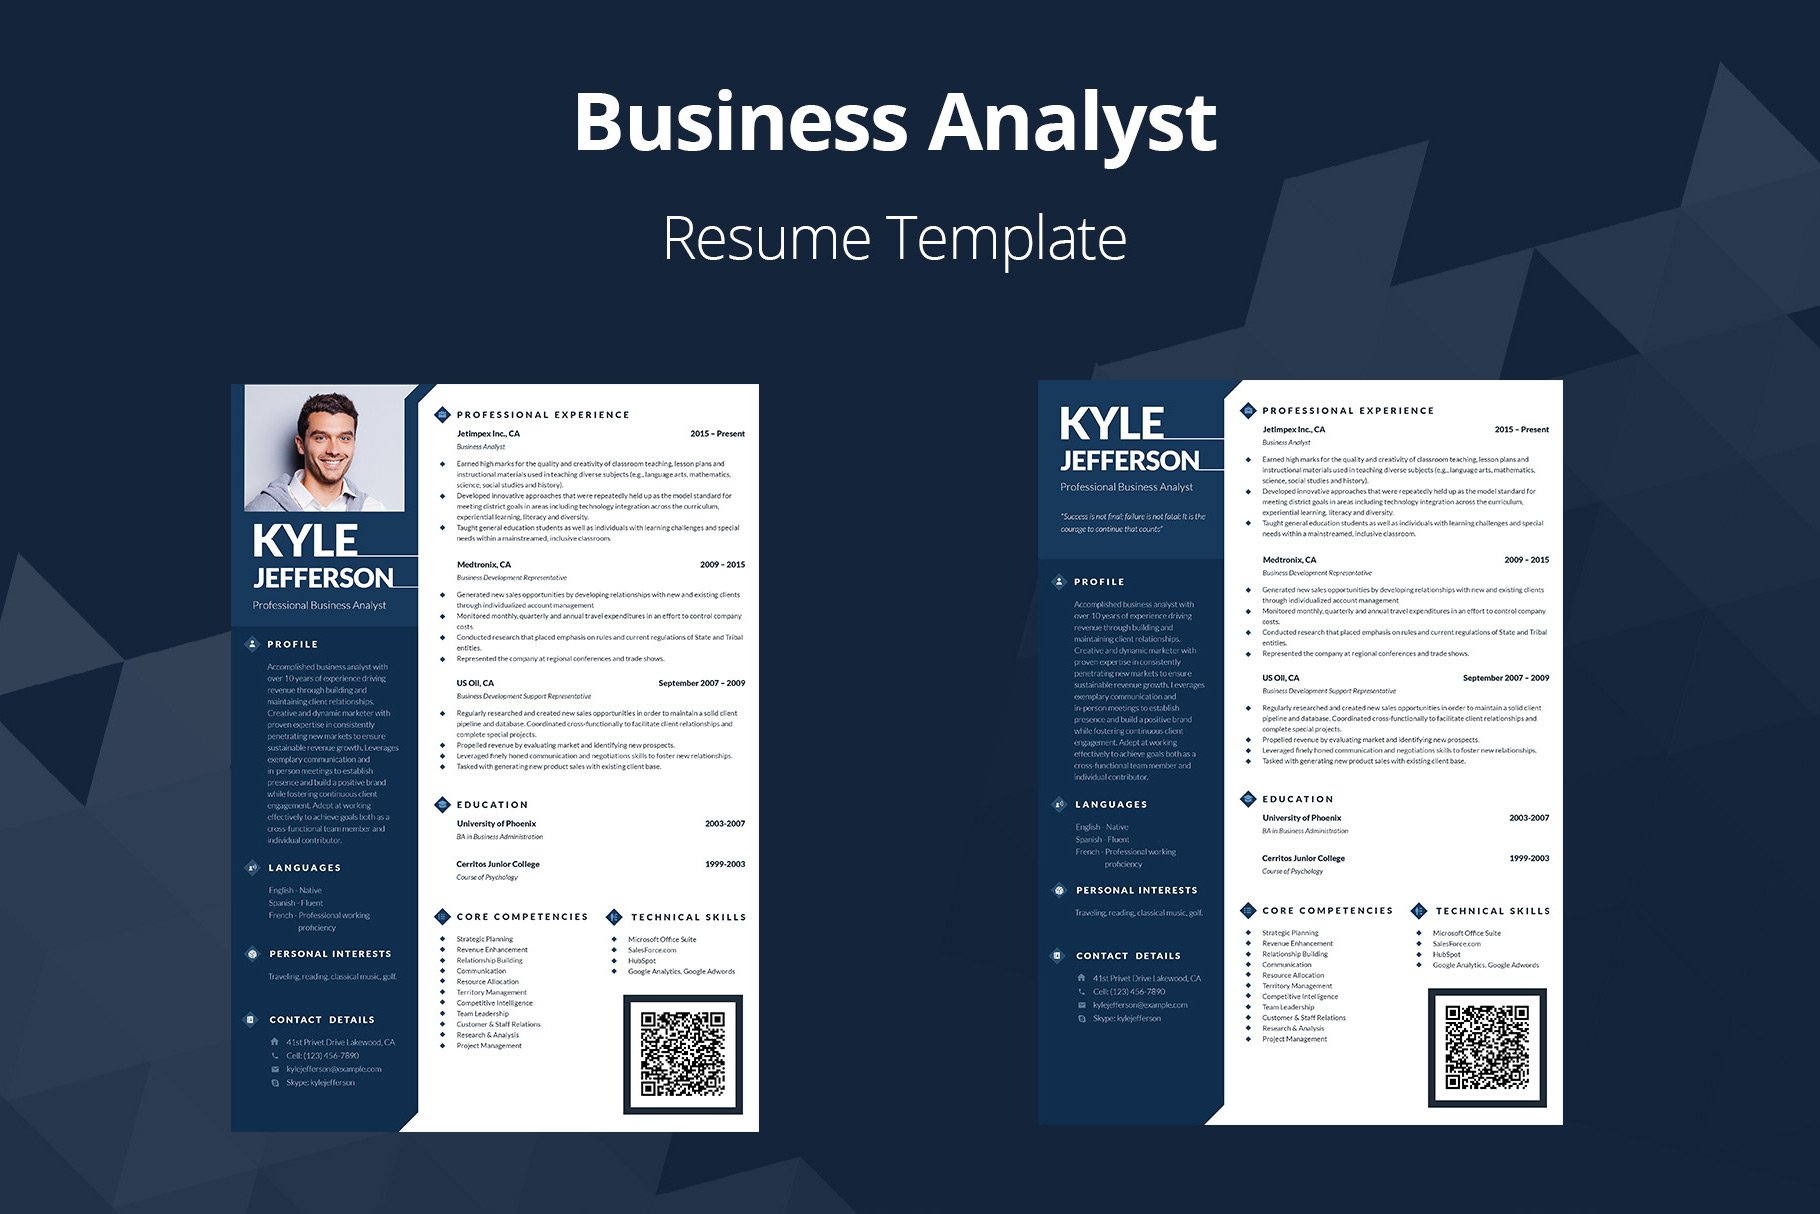 Editable Resume Business Analyst Resume Templates Creative Market